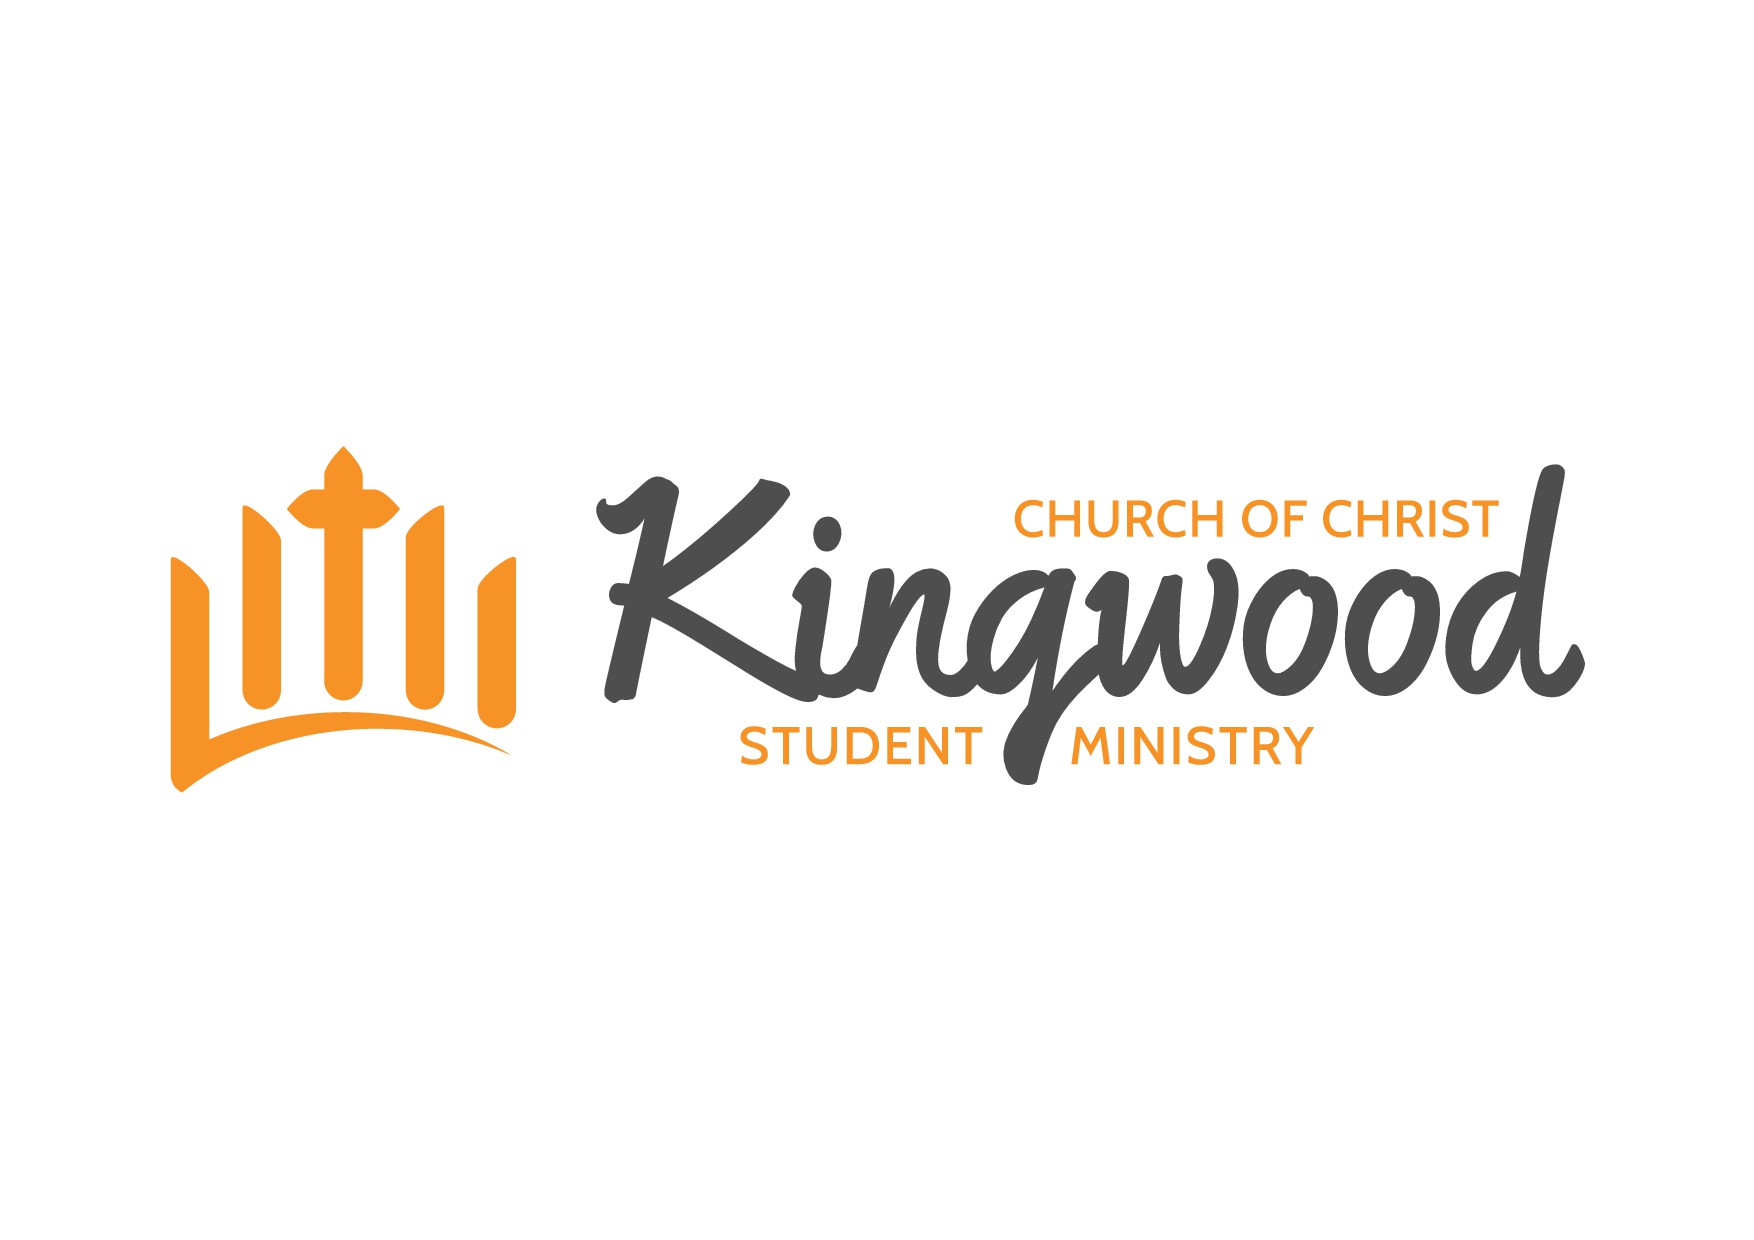 Design a modern logo for our church. We are a traditional church looking for a new style.